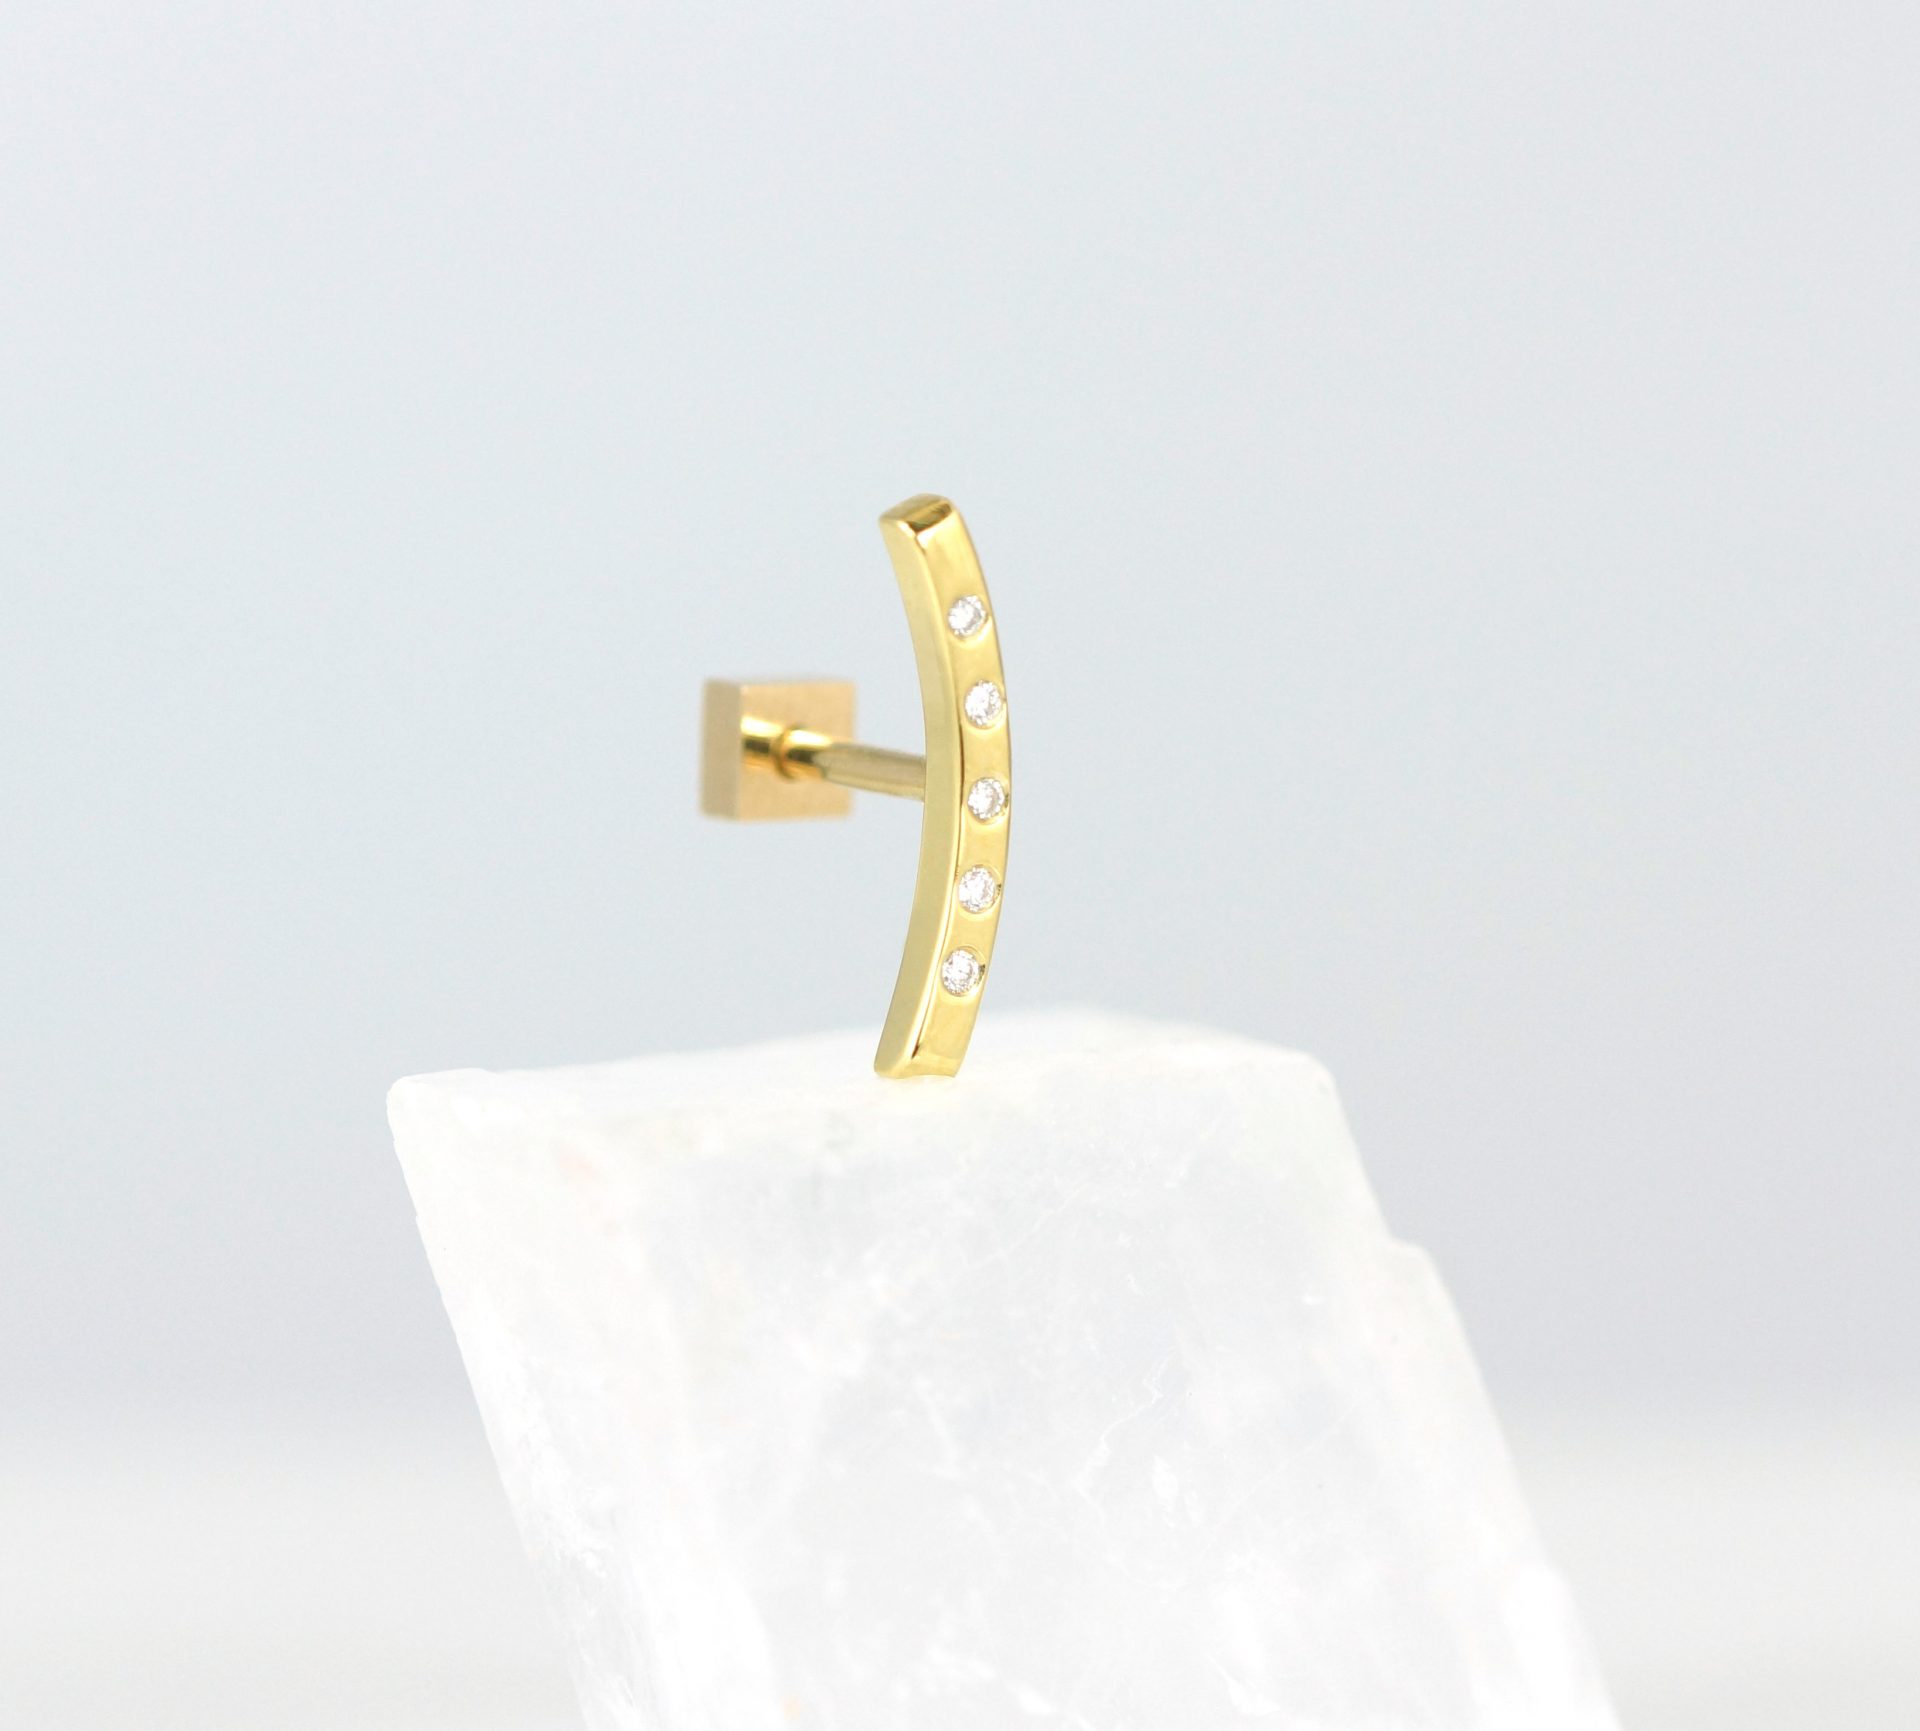 stylish 18k yellow gold curved in a bow shape earring set with five brilliant cut natural diamonds perfectly follows the natural curve of the helix